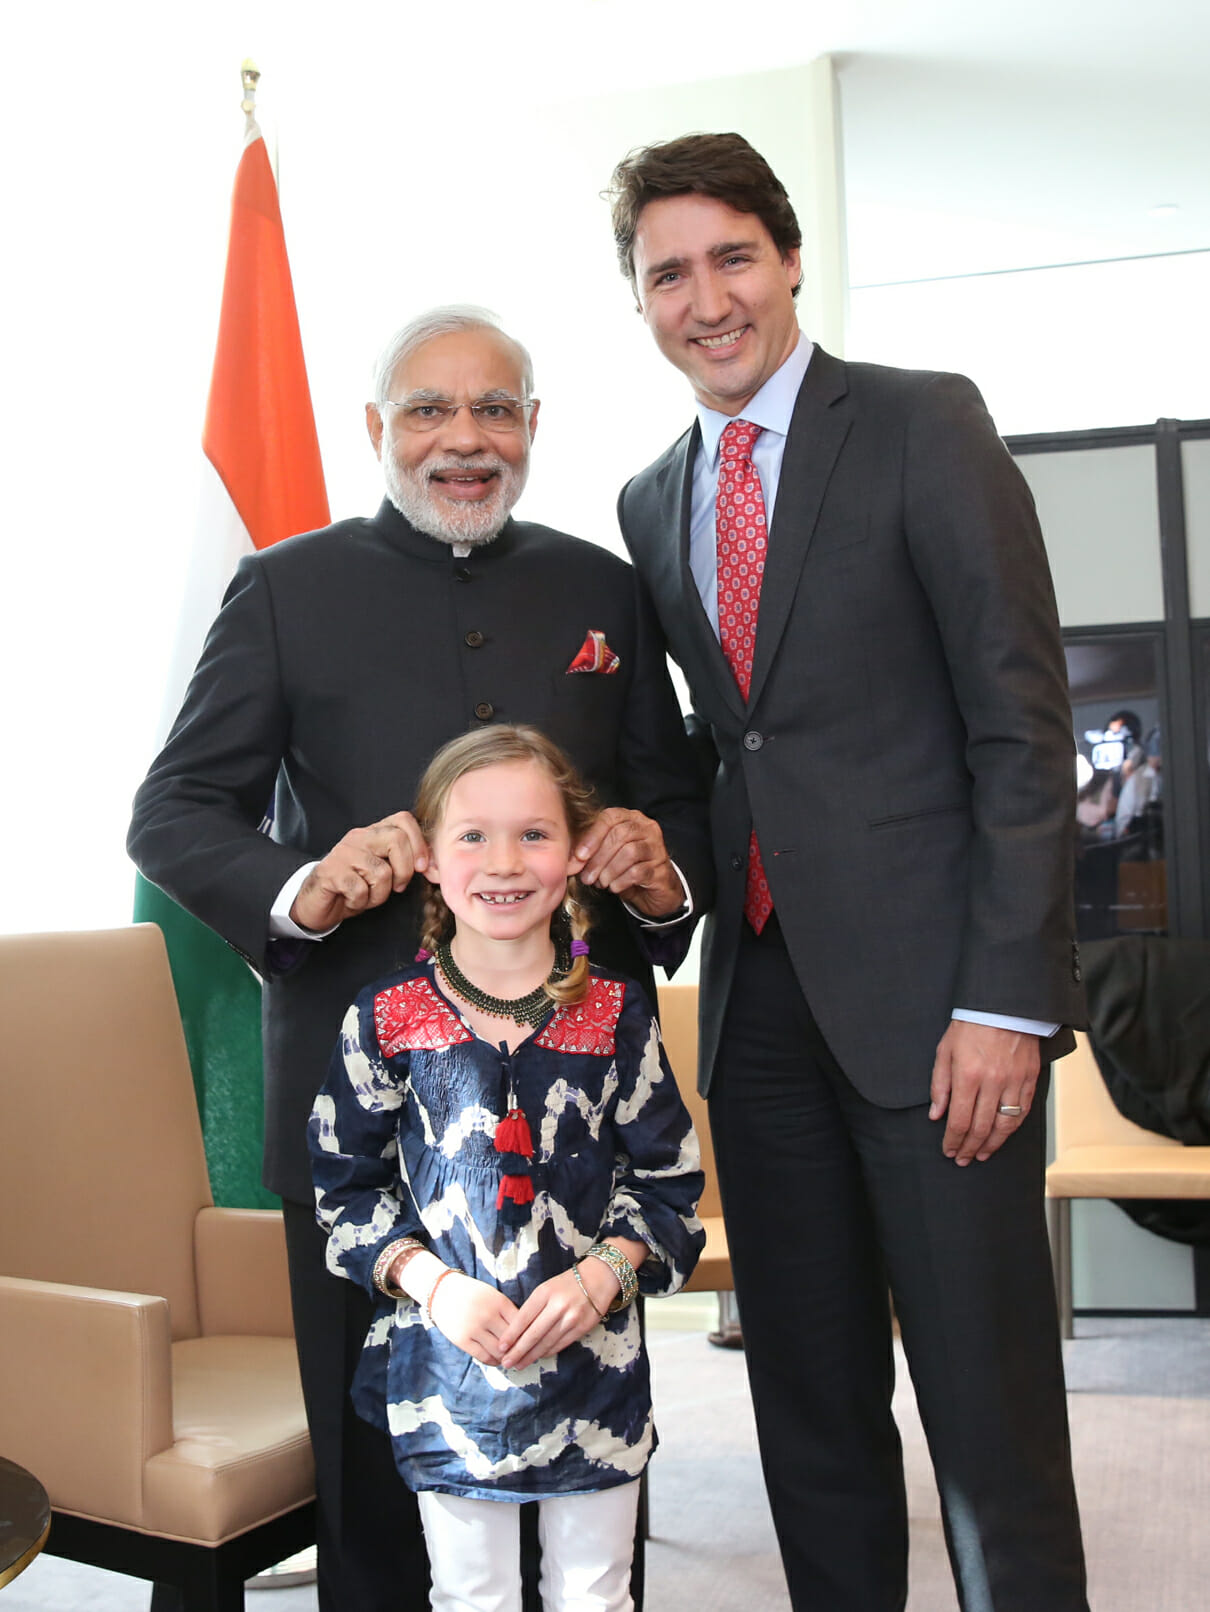 Indian Prime Minister Narendra Modi meets with Justin Trudeau and his daughter Ella-Grace